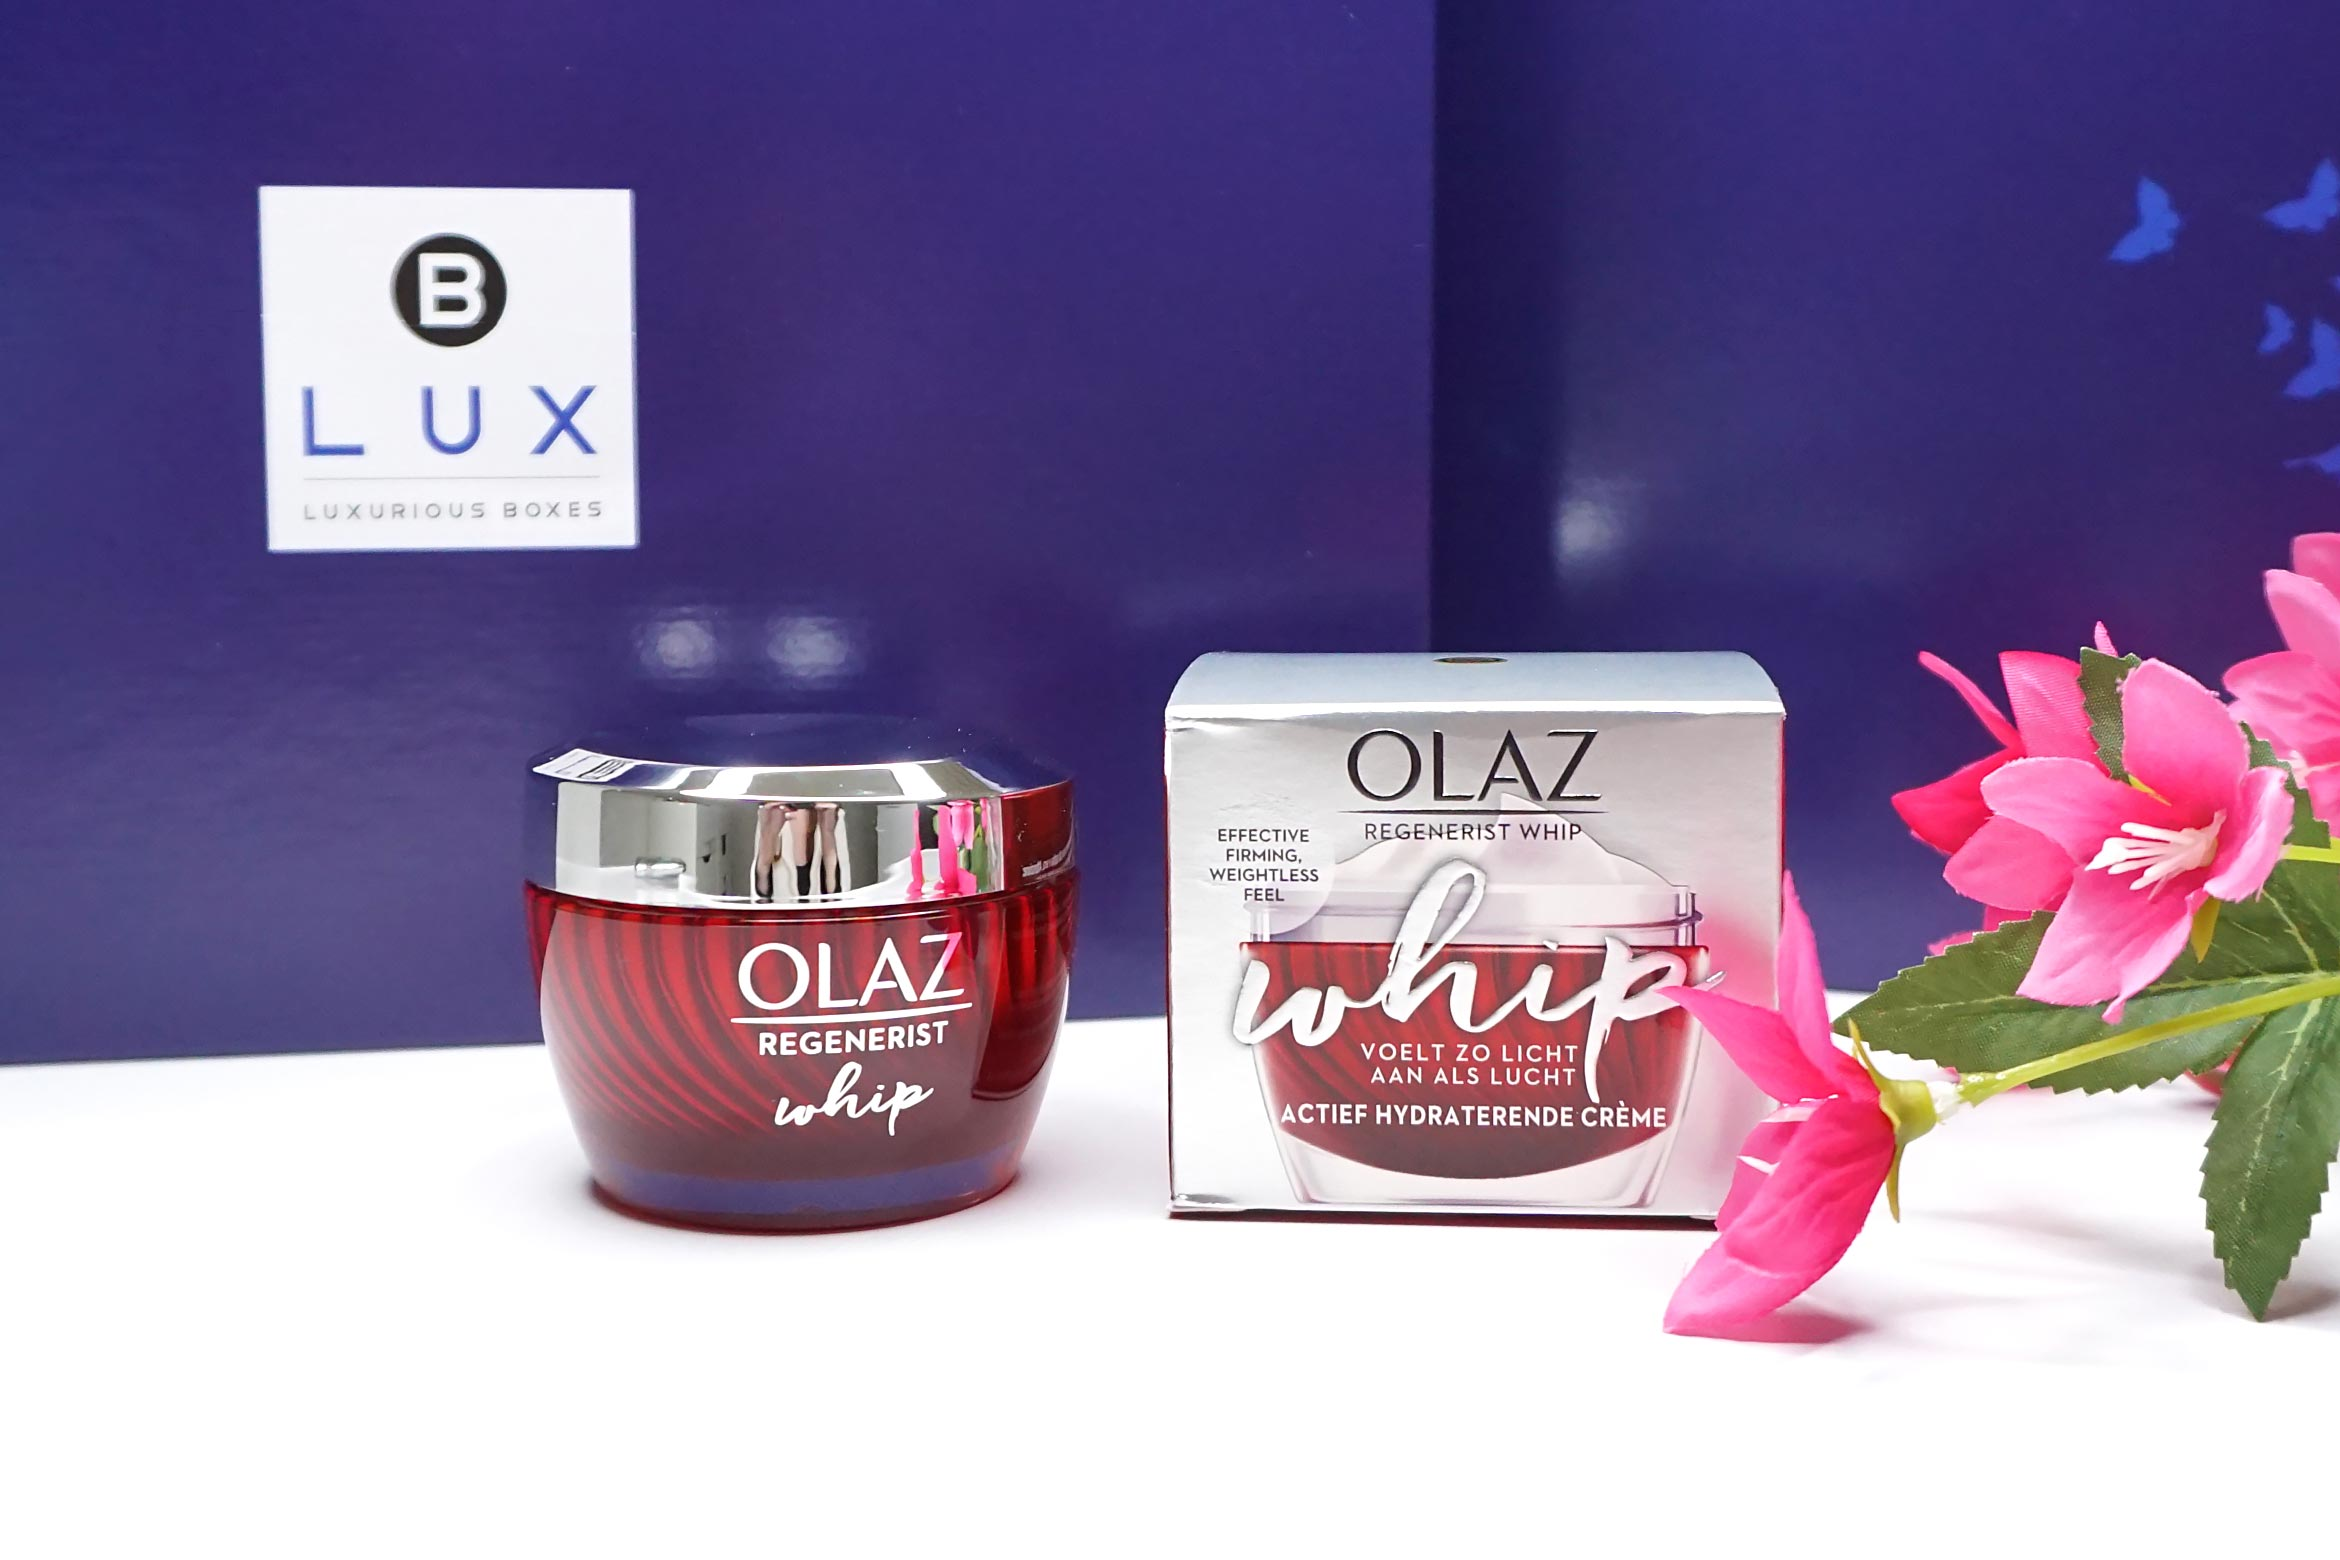 BLUX-box-maart-april-2019-review-olaz-regenerist-whip-creme-1